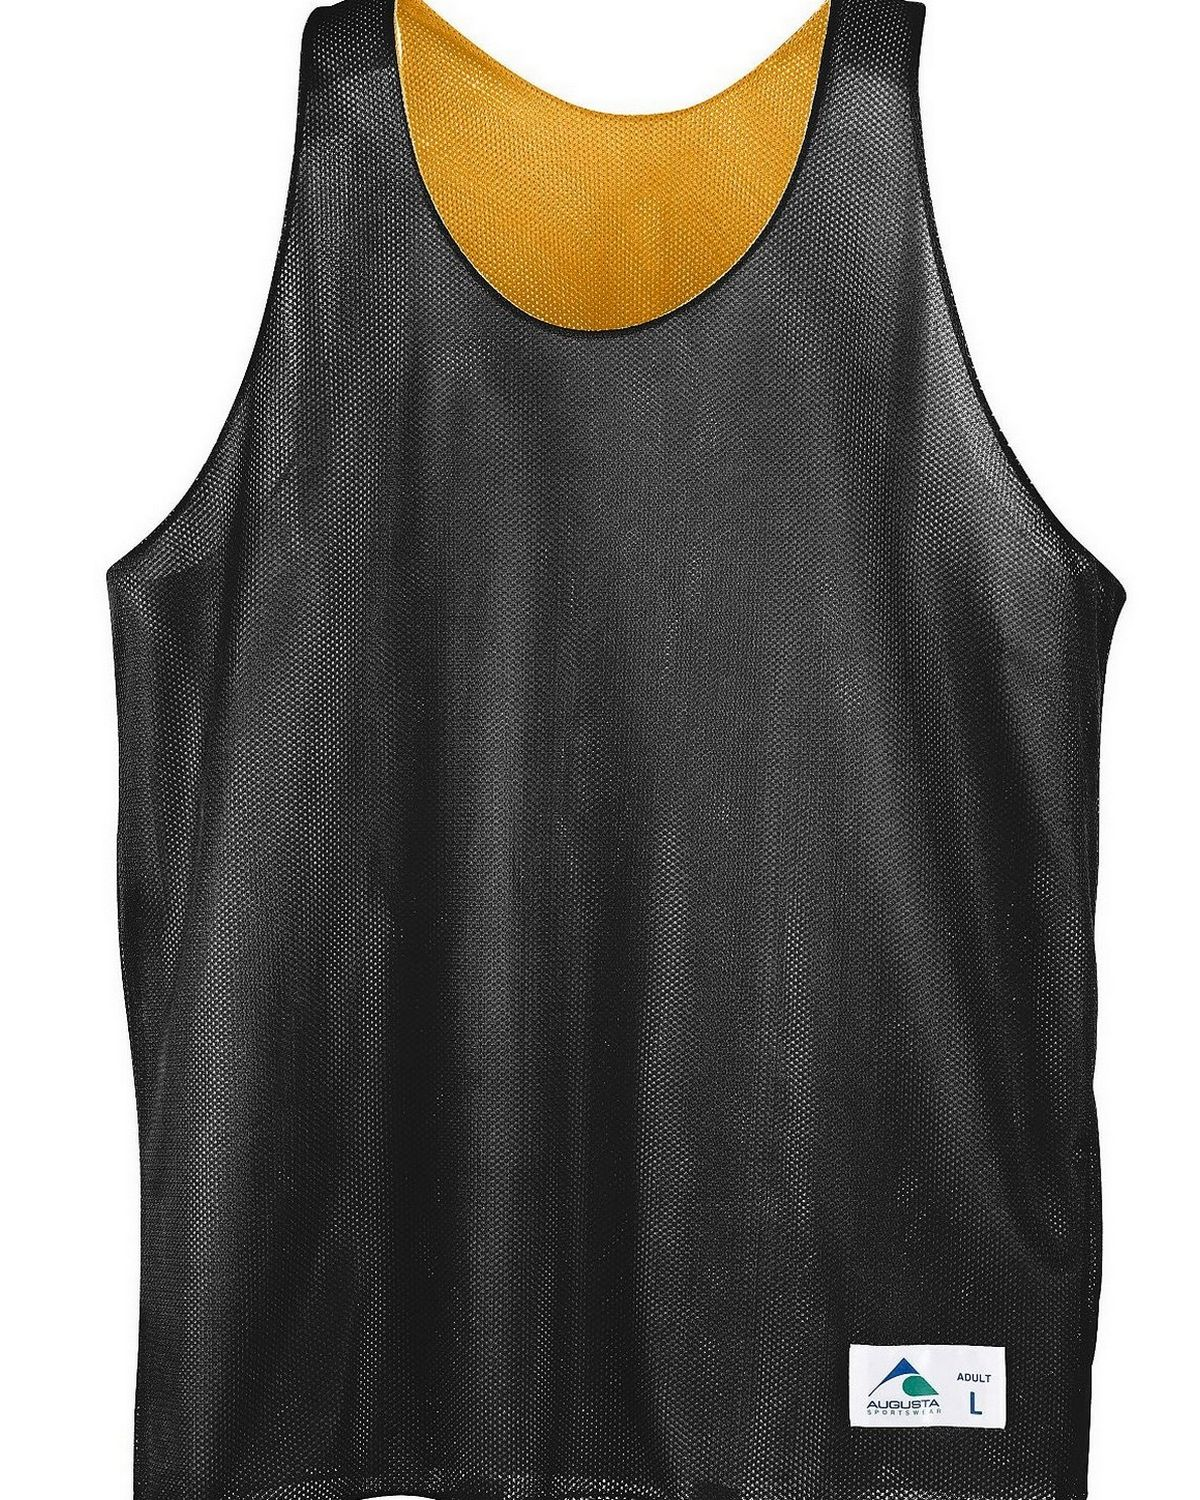 2abe5e5efee8 Augusta Sportswear 137 Youth Reversible Mini Mesh League Tank. Decoration.  Model image. May not reflect selected color. No Picture